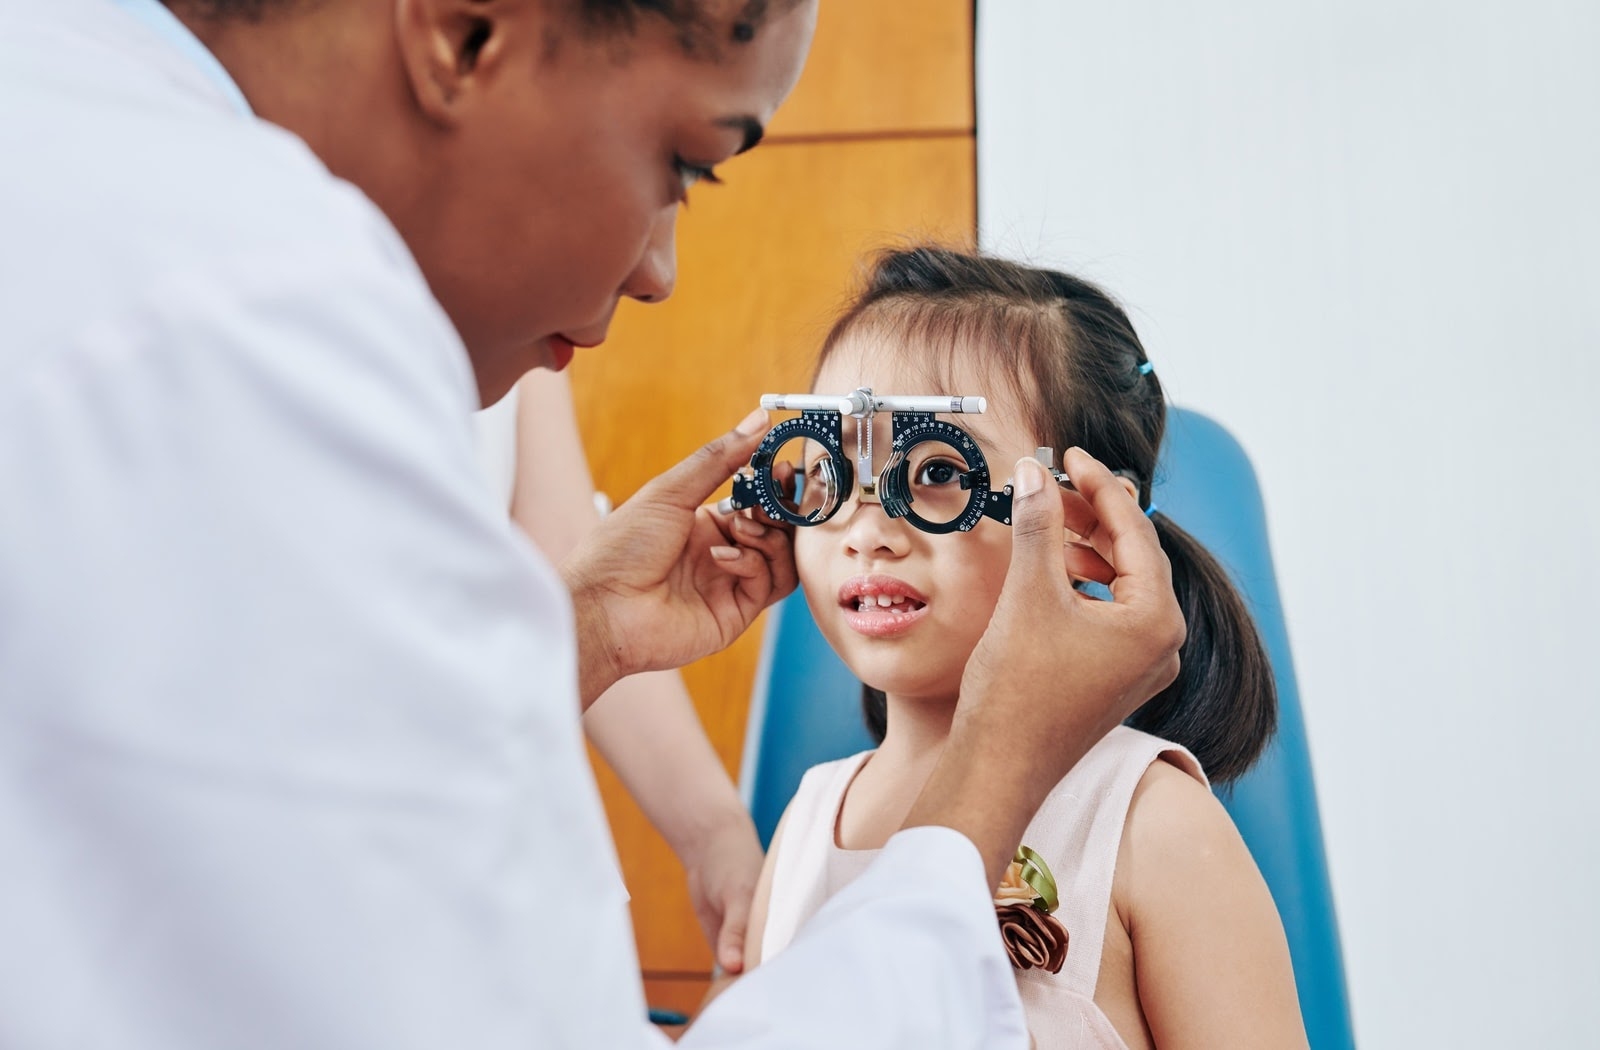 Young girl being fit for eyeglasses by an optician